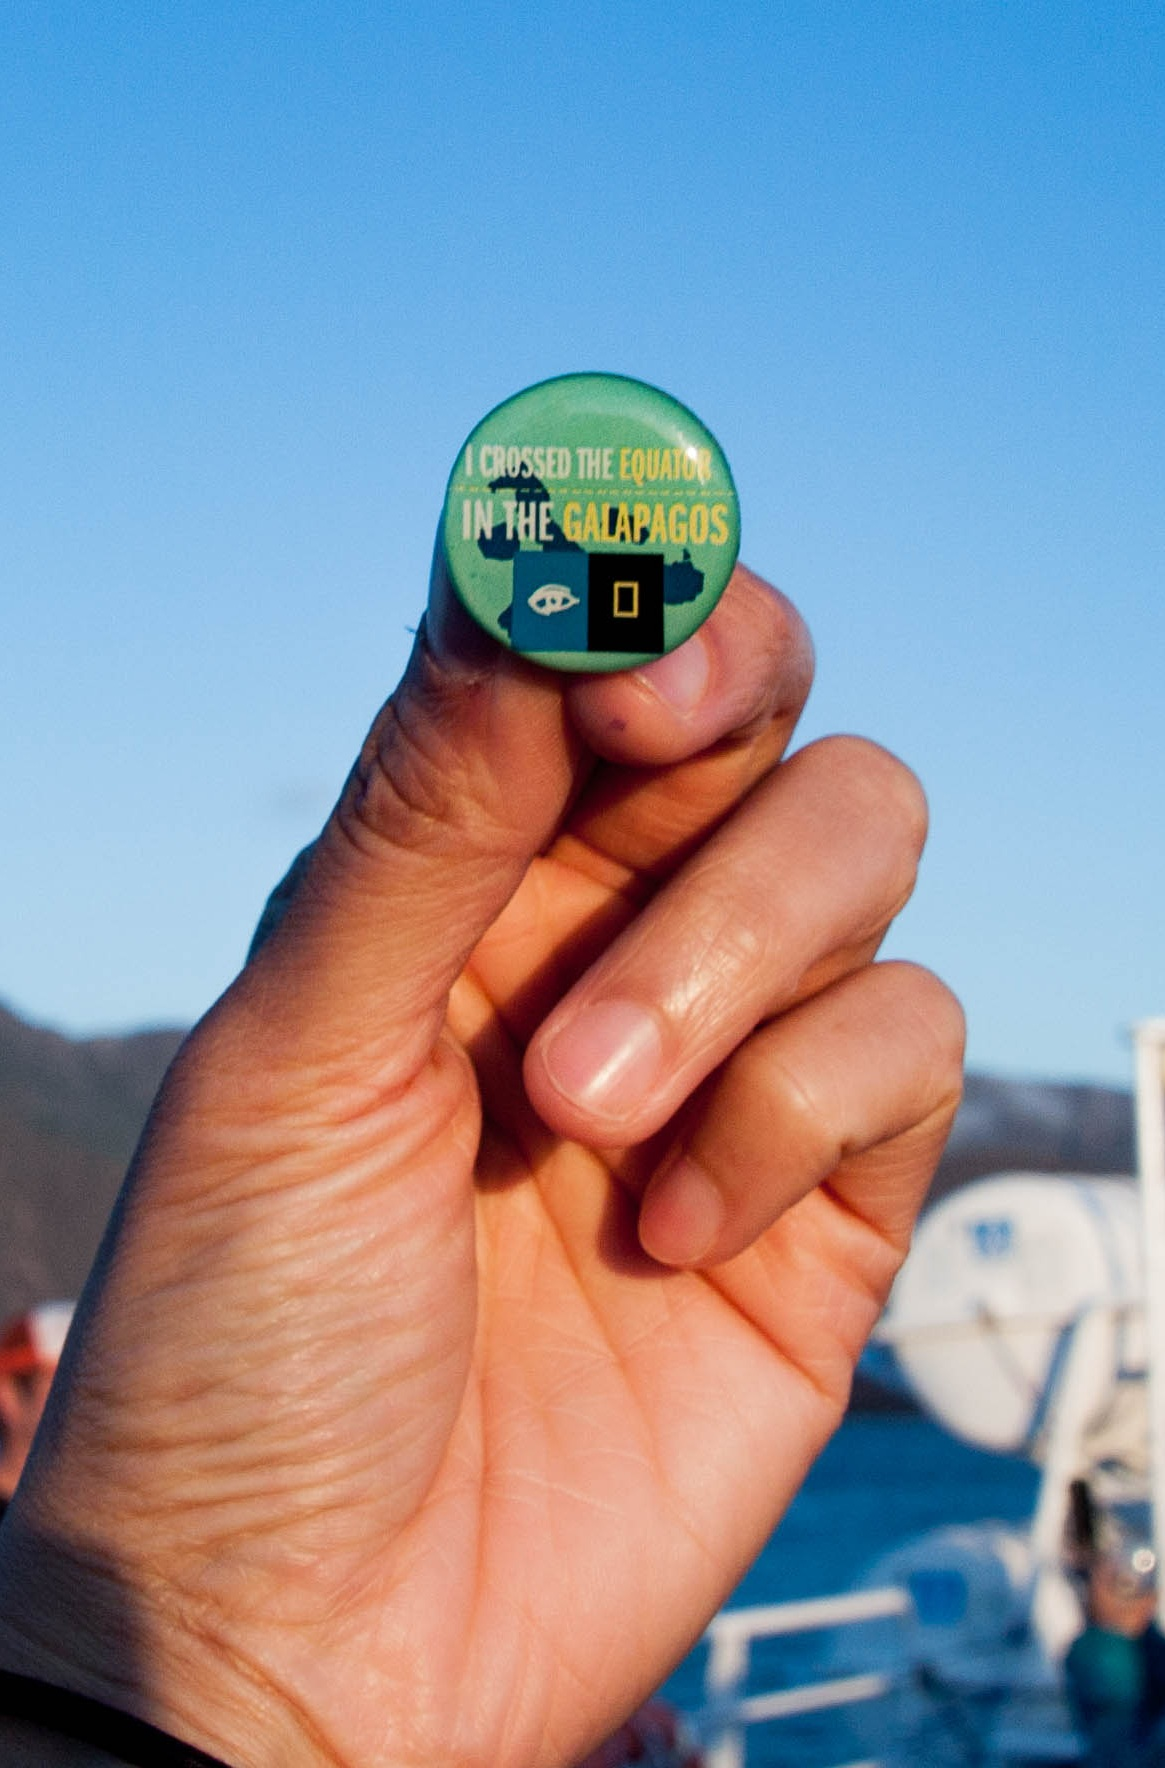 They gave me this pin on the ship to remember that I went across the equator!  Photo by Alison Travis